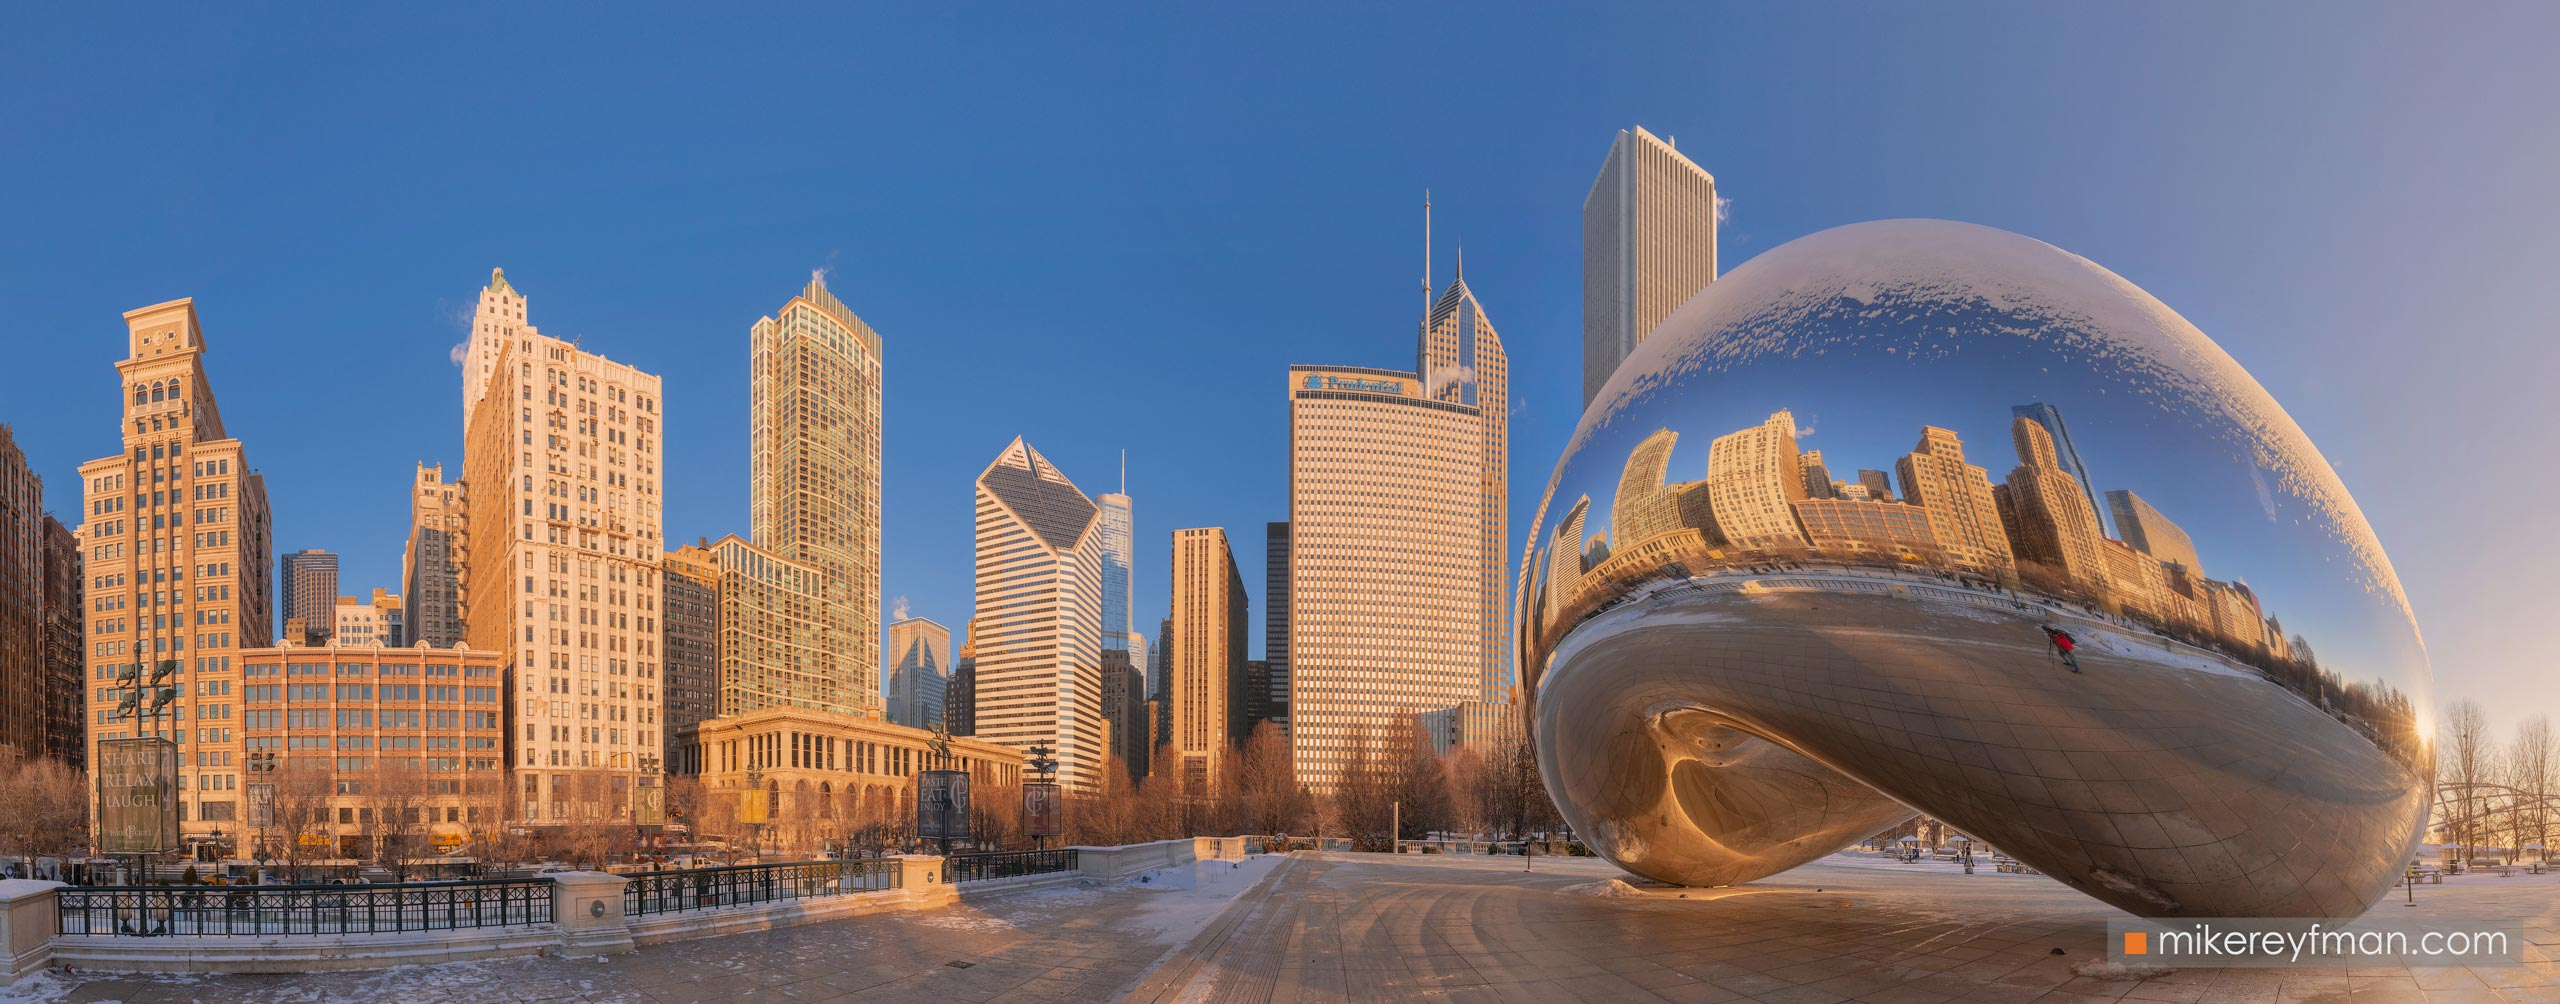 "Cloud Gate - ""The Bean"". Millennium Park, Chicago, Illinois, USA 100-CH1-D8C8366_Pano_1x2.55 - Chicago, USA: The"